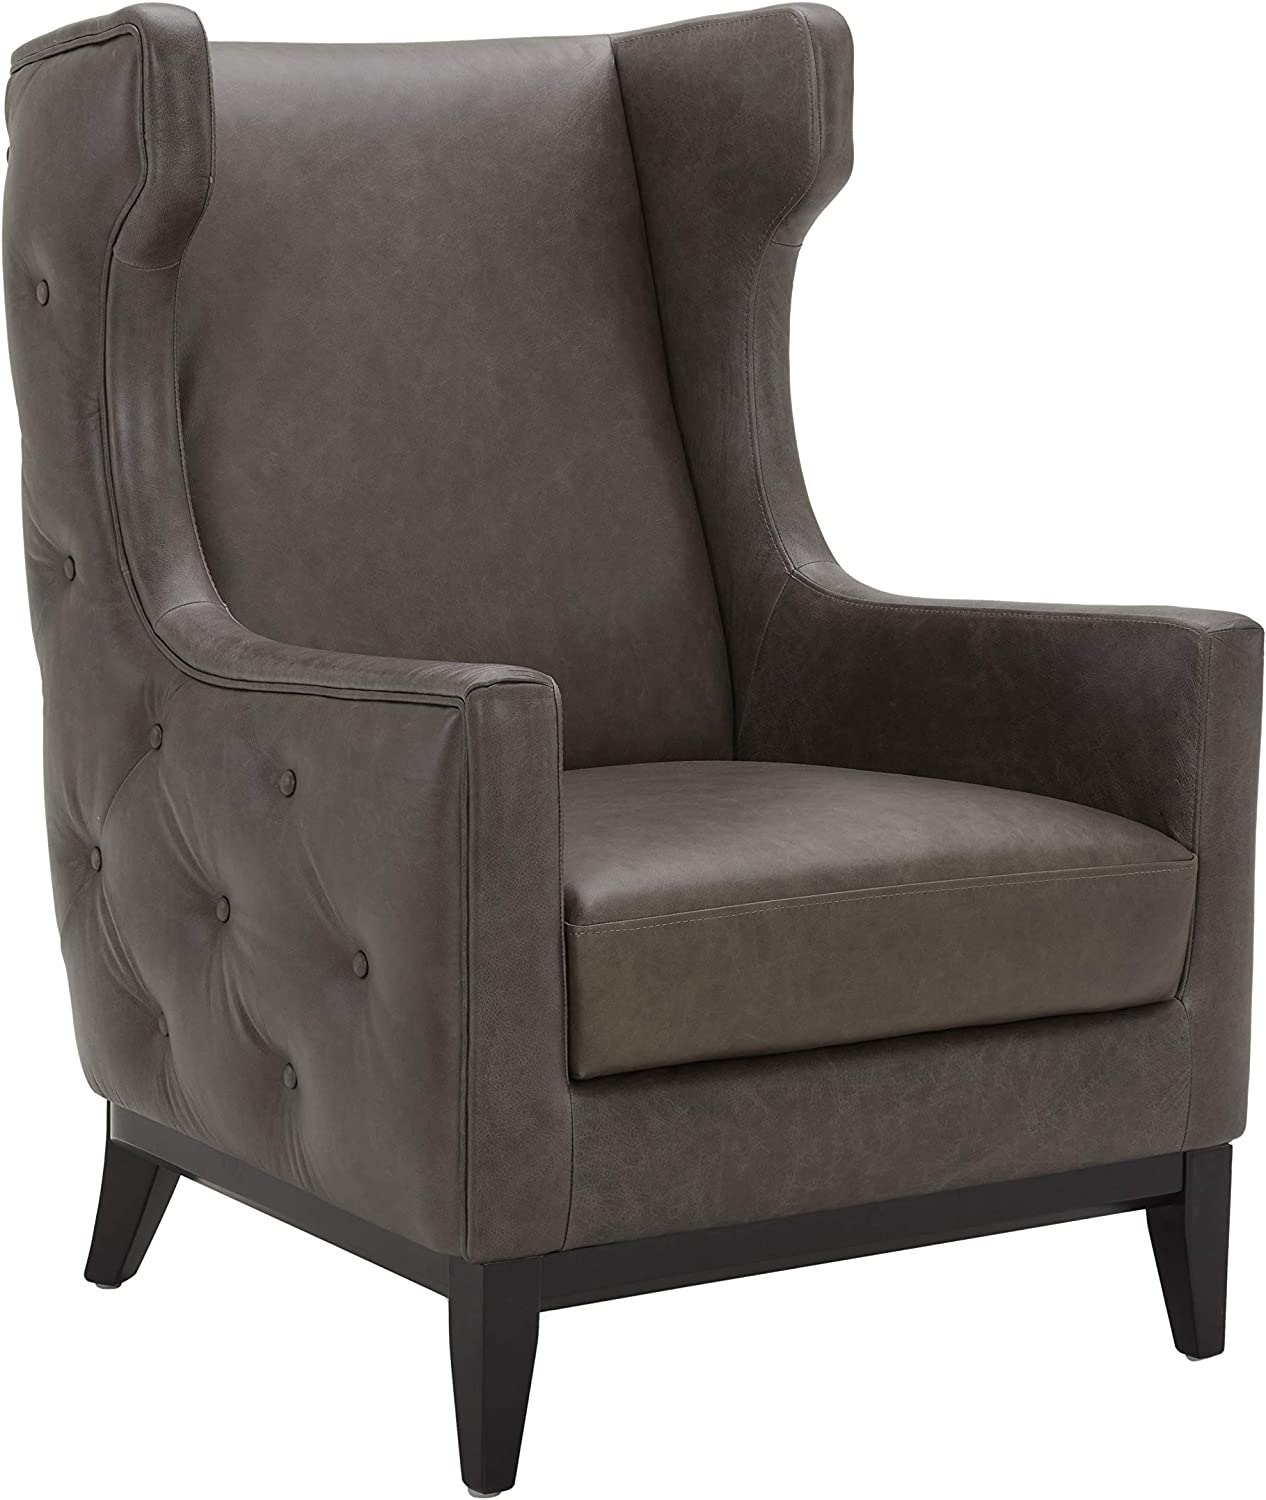 Amazon Brand – Stone & Beam Rosewood Button-Tufted Leather Wingback Accent Chair, 30